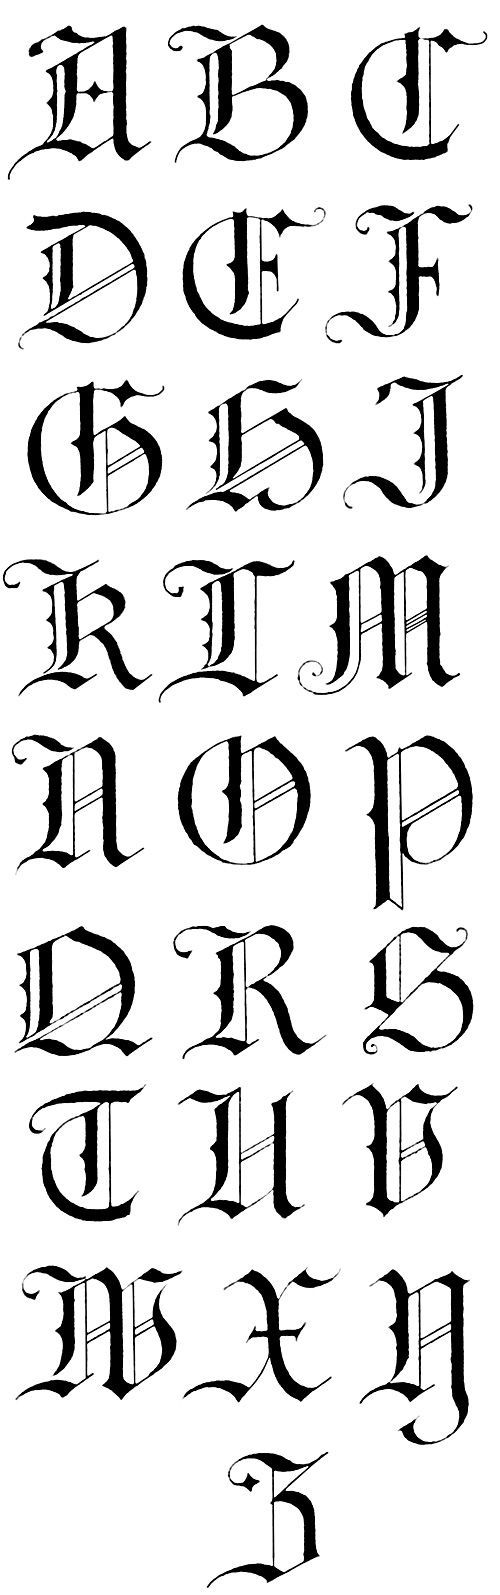 German Gothic Calligraphy Alphabet